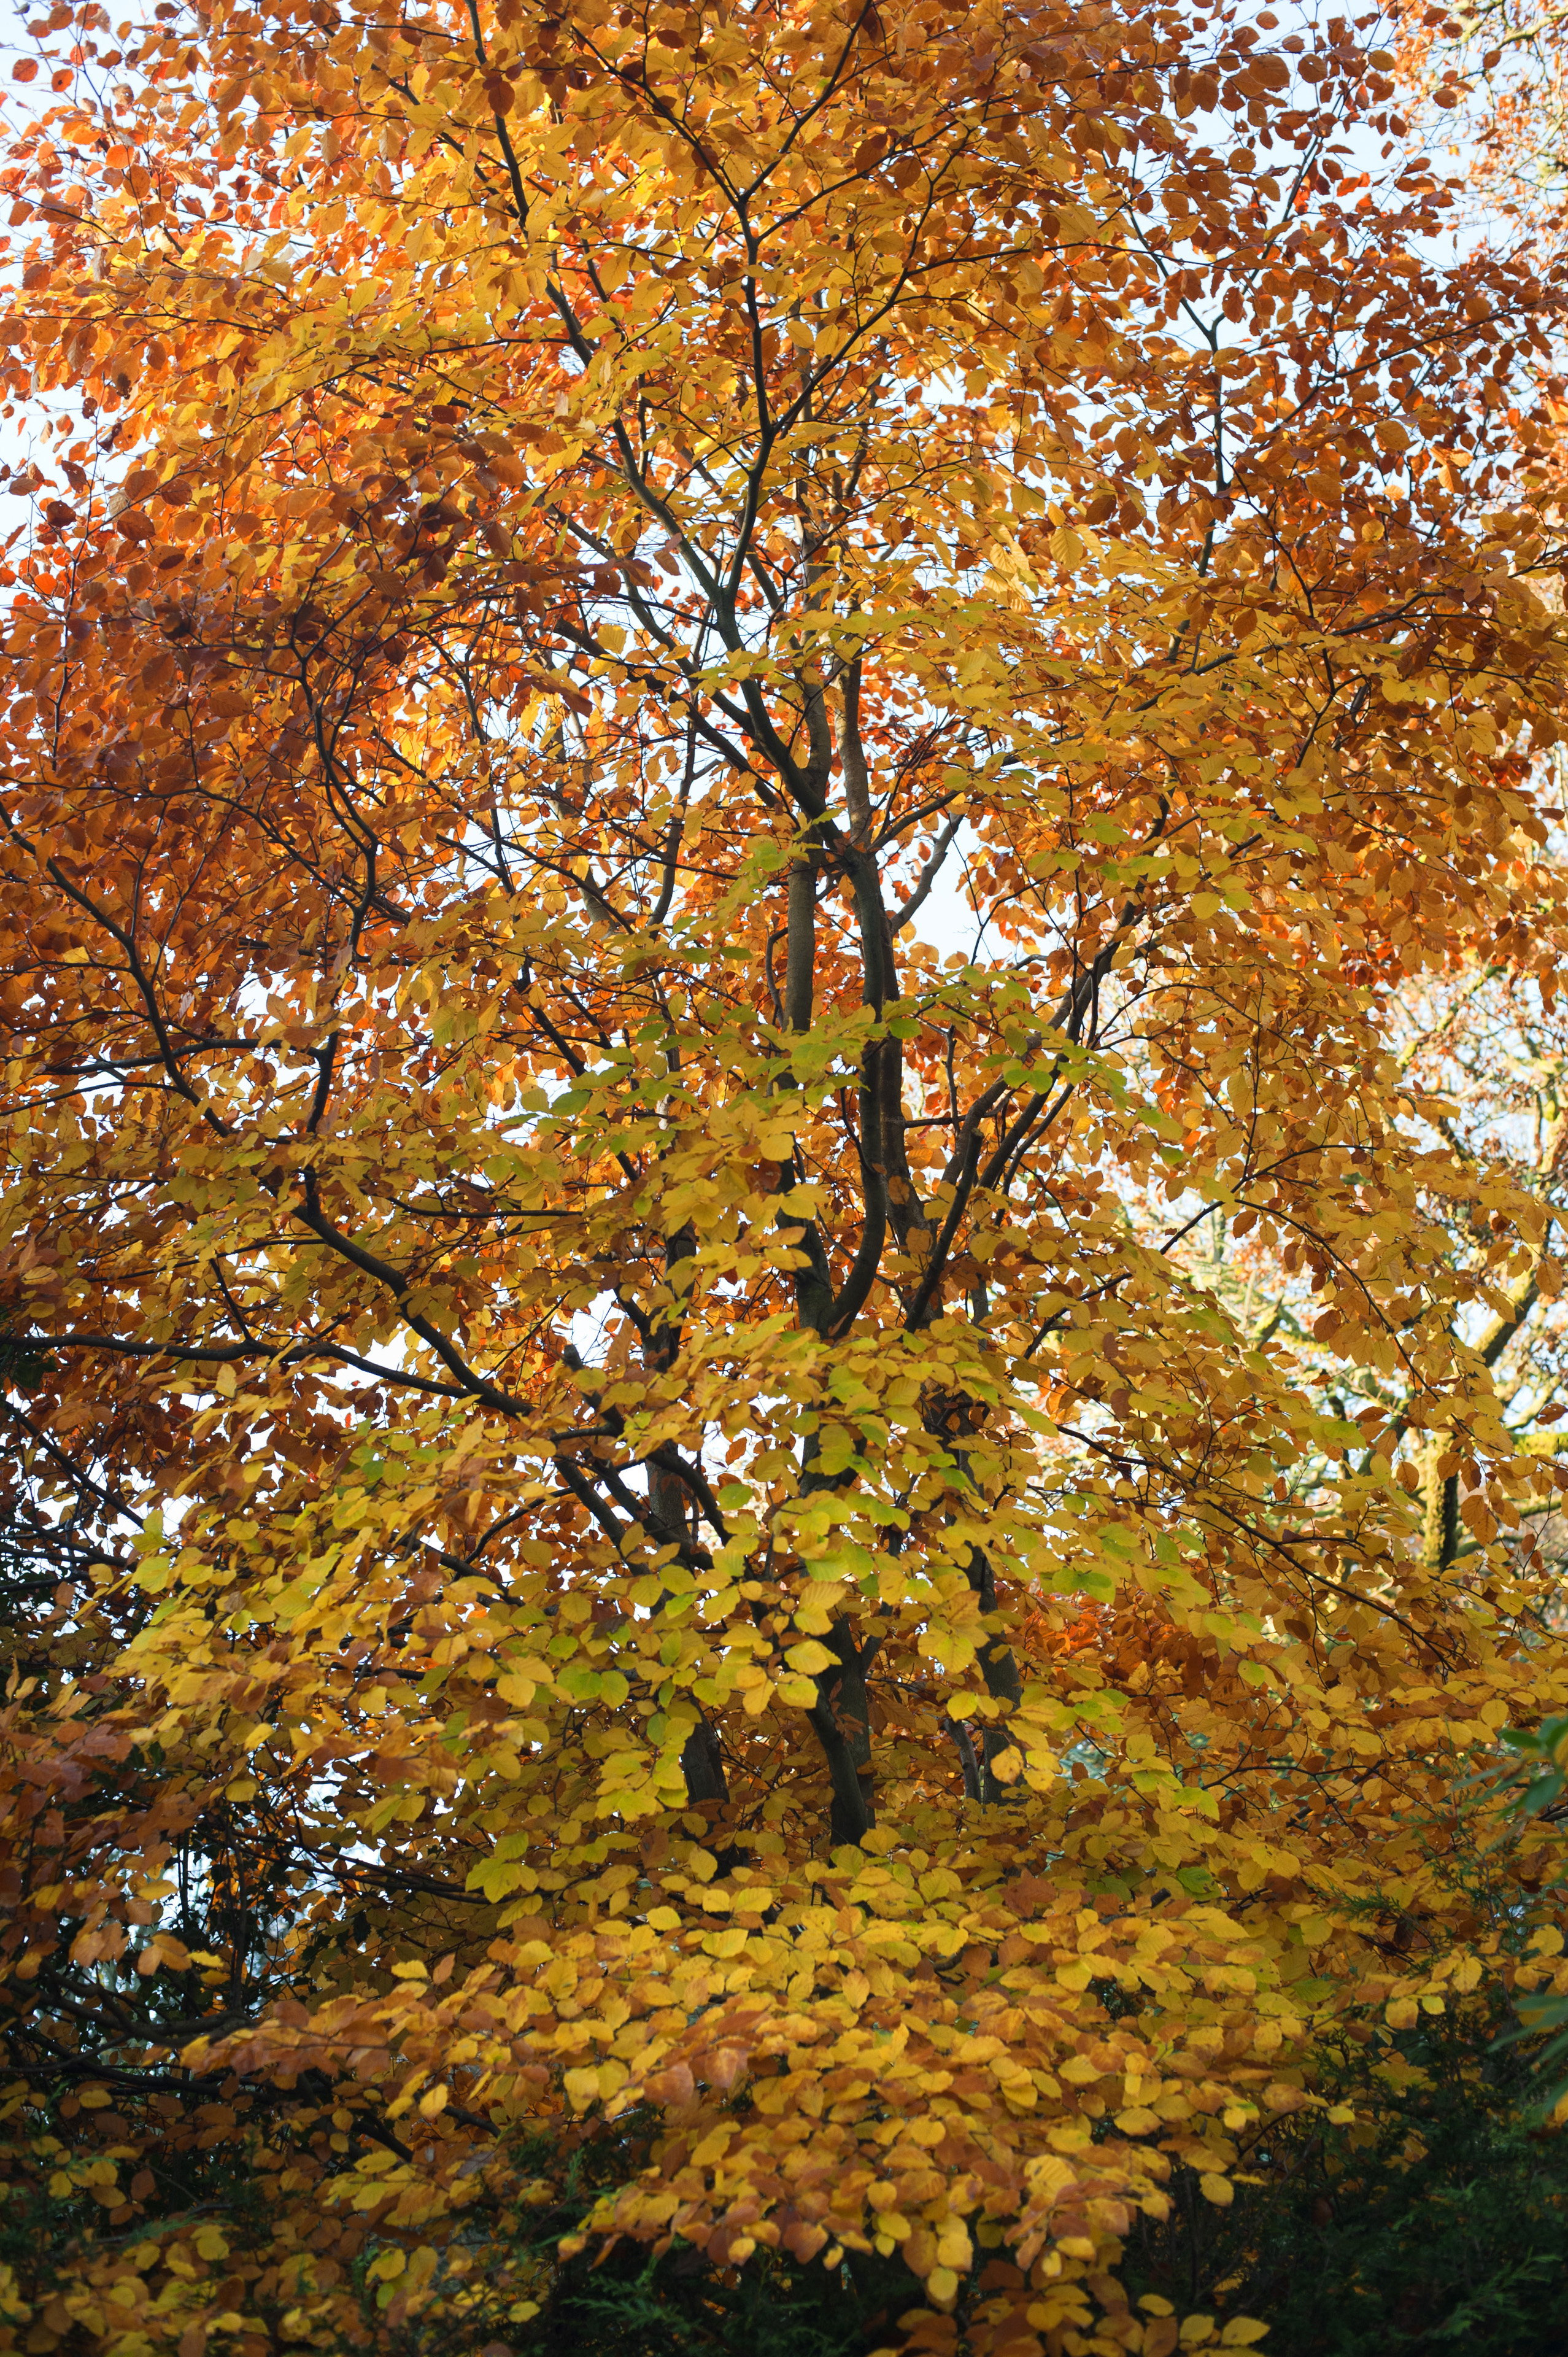 Colorful yellow autumn or fall foliage on woodland trees marking the changing of the seasons